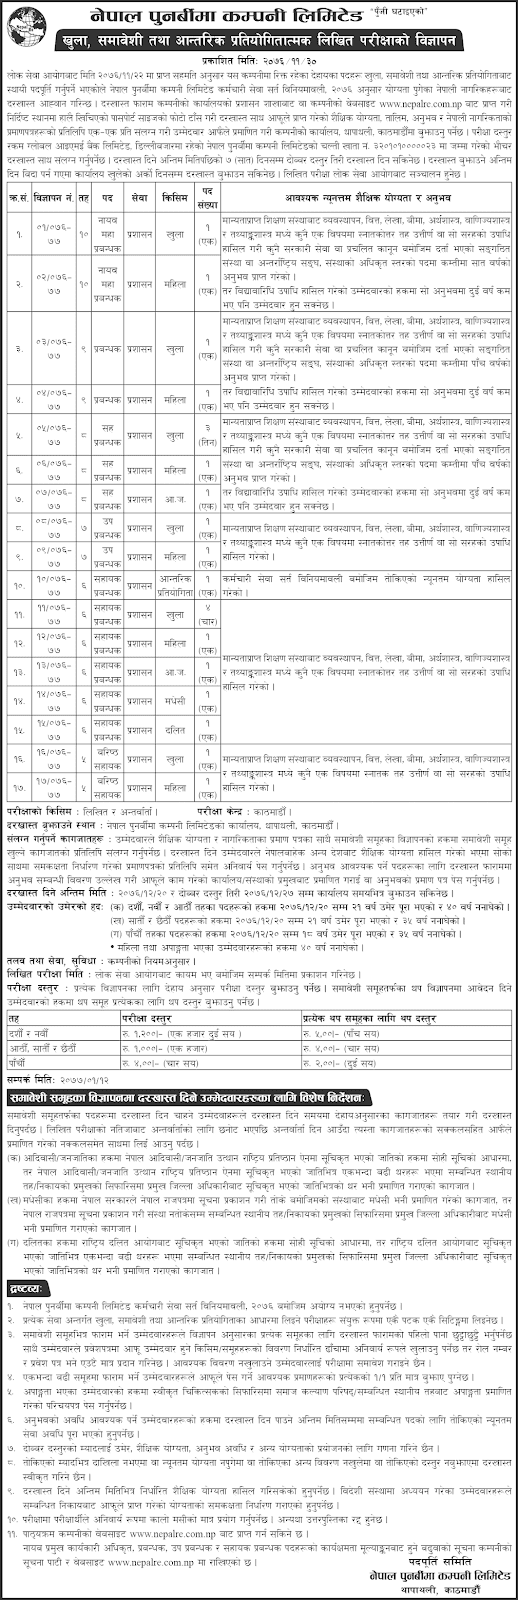 Nepal Re-Insurance Company Limited Vacancy for Various Positions